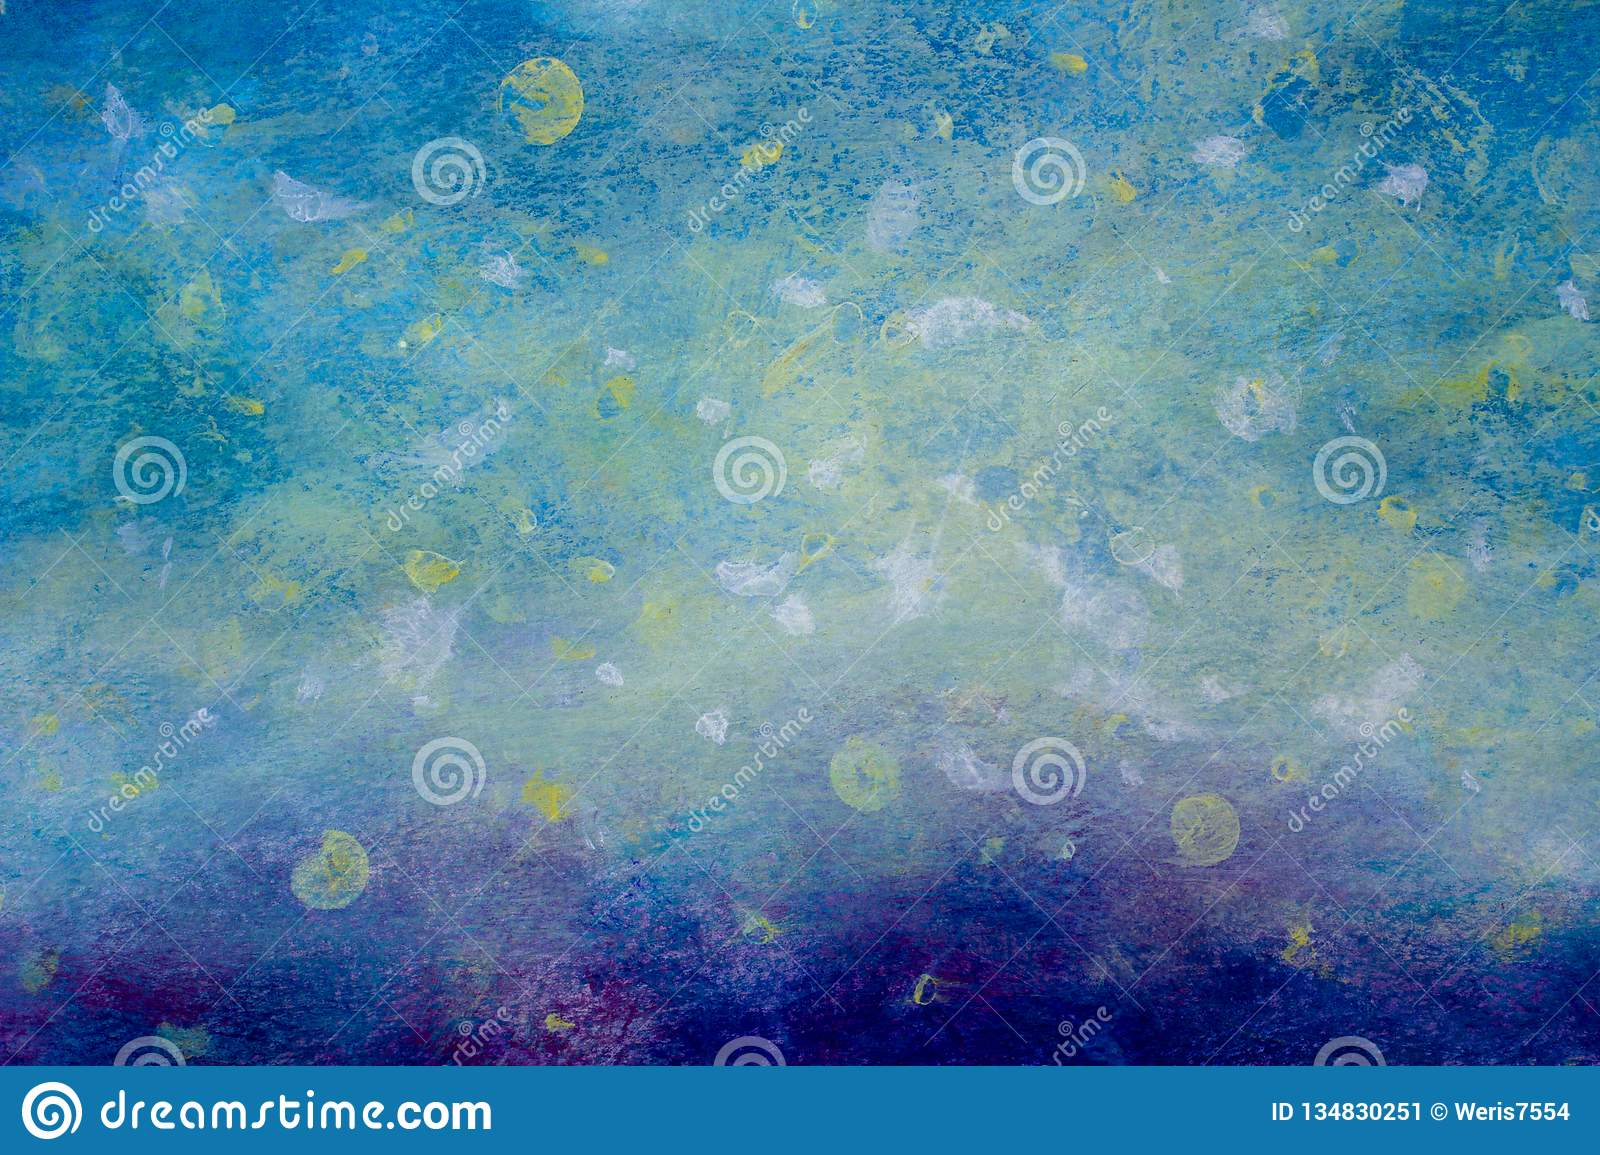 Abstract Cosmos Starry Sky Planet Blue Background Oil